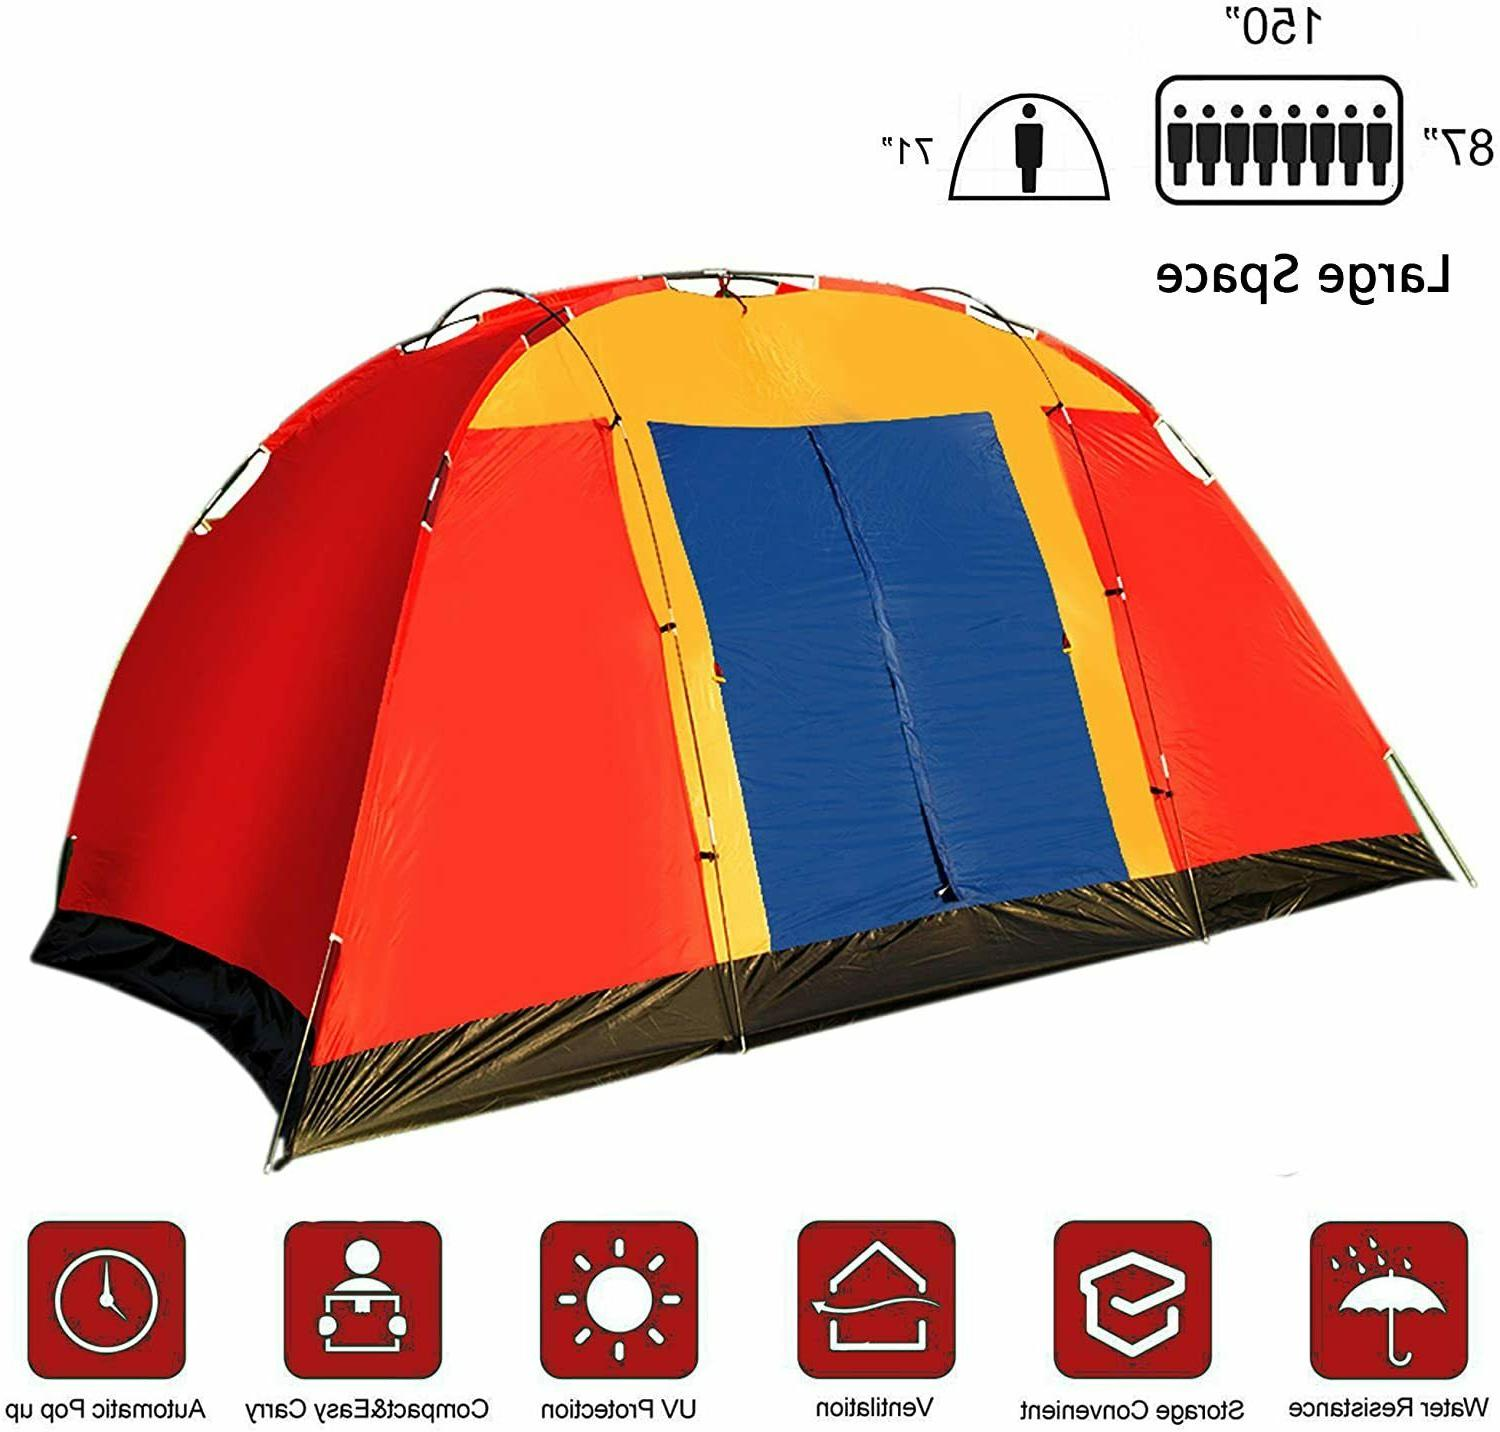 8 person camping tent 12 5ft outdoor